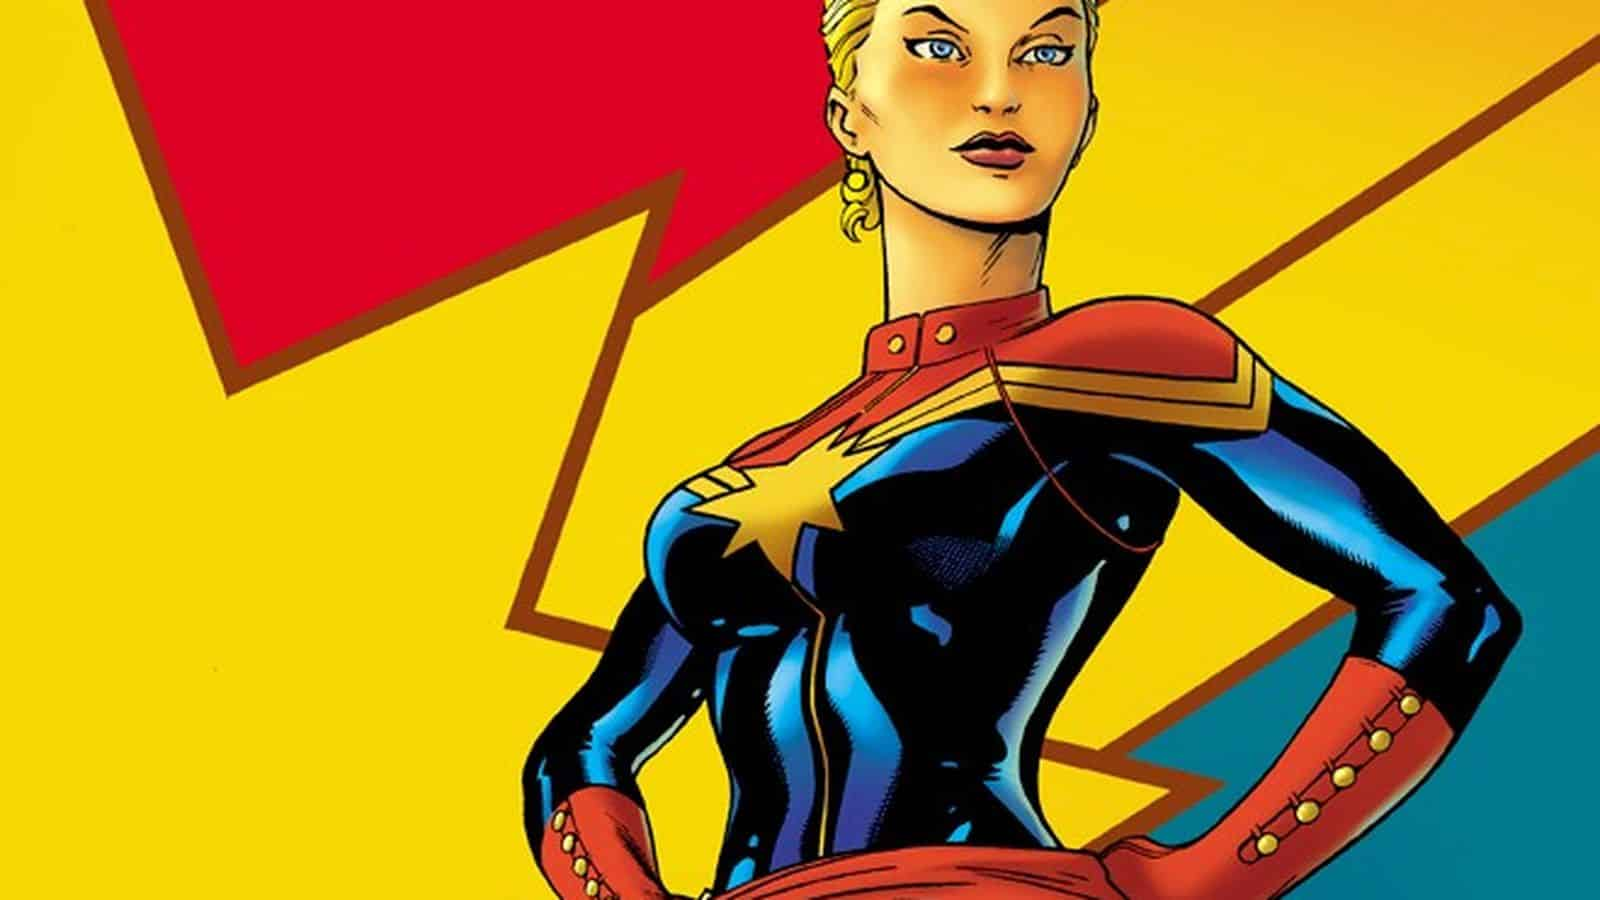 Brie Larson Captain Marvel Is A Symbol For Women Heroic Hollywood